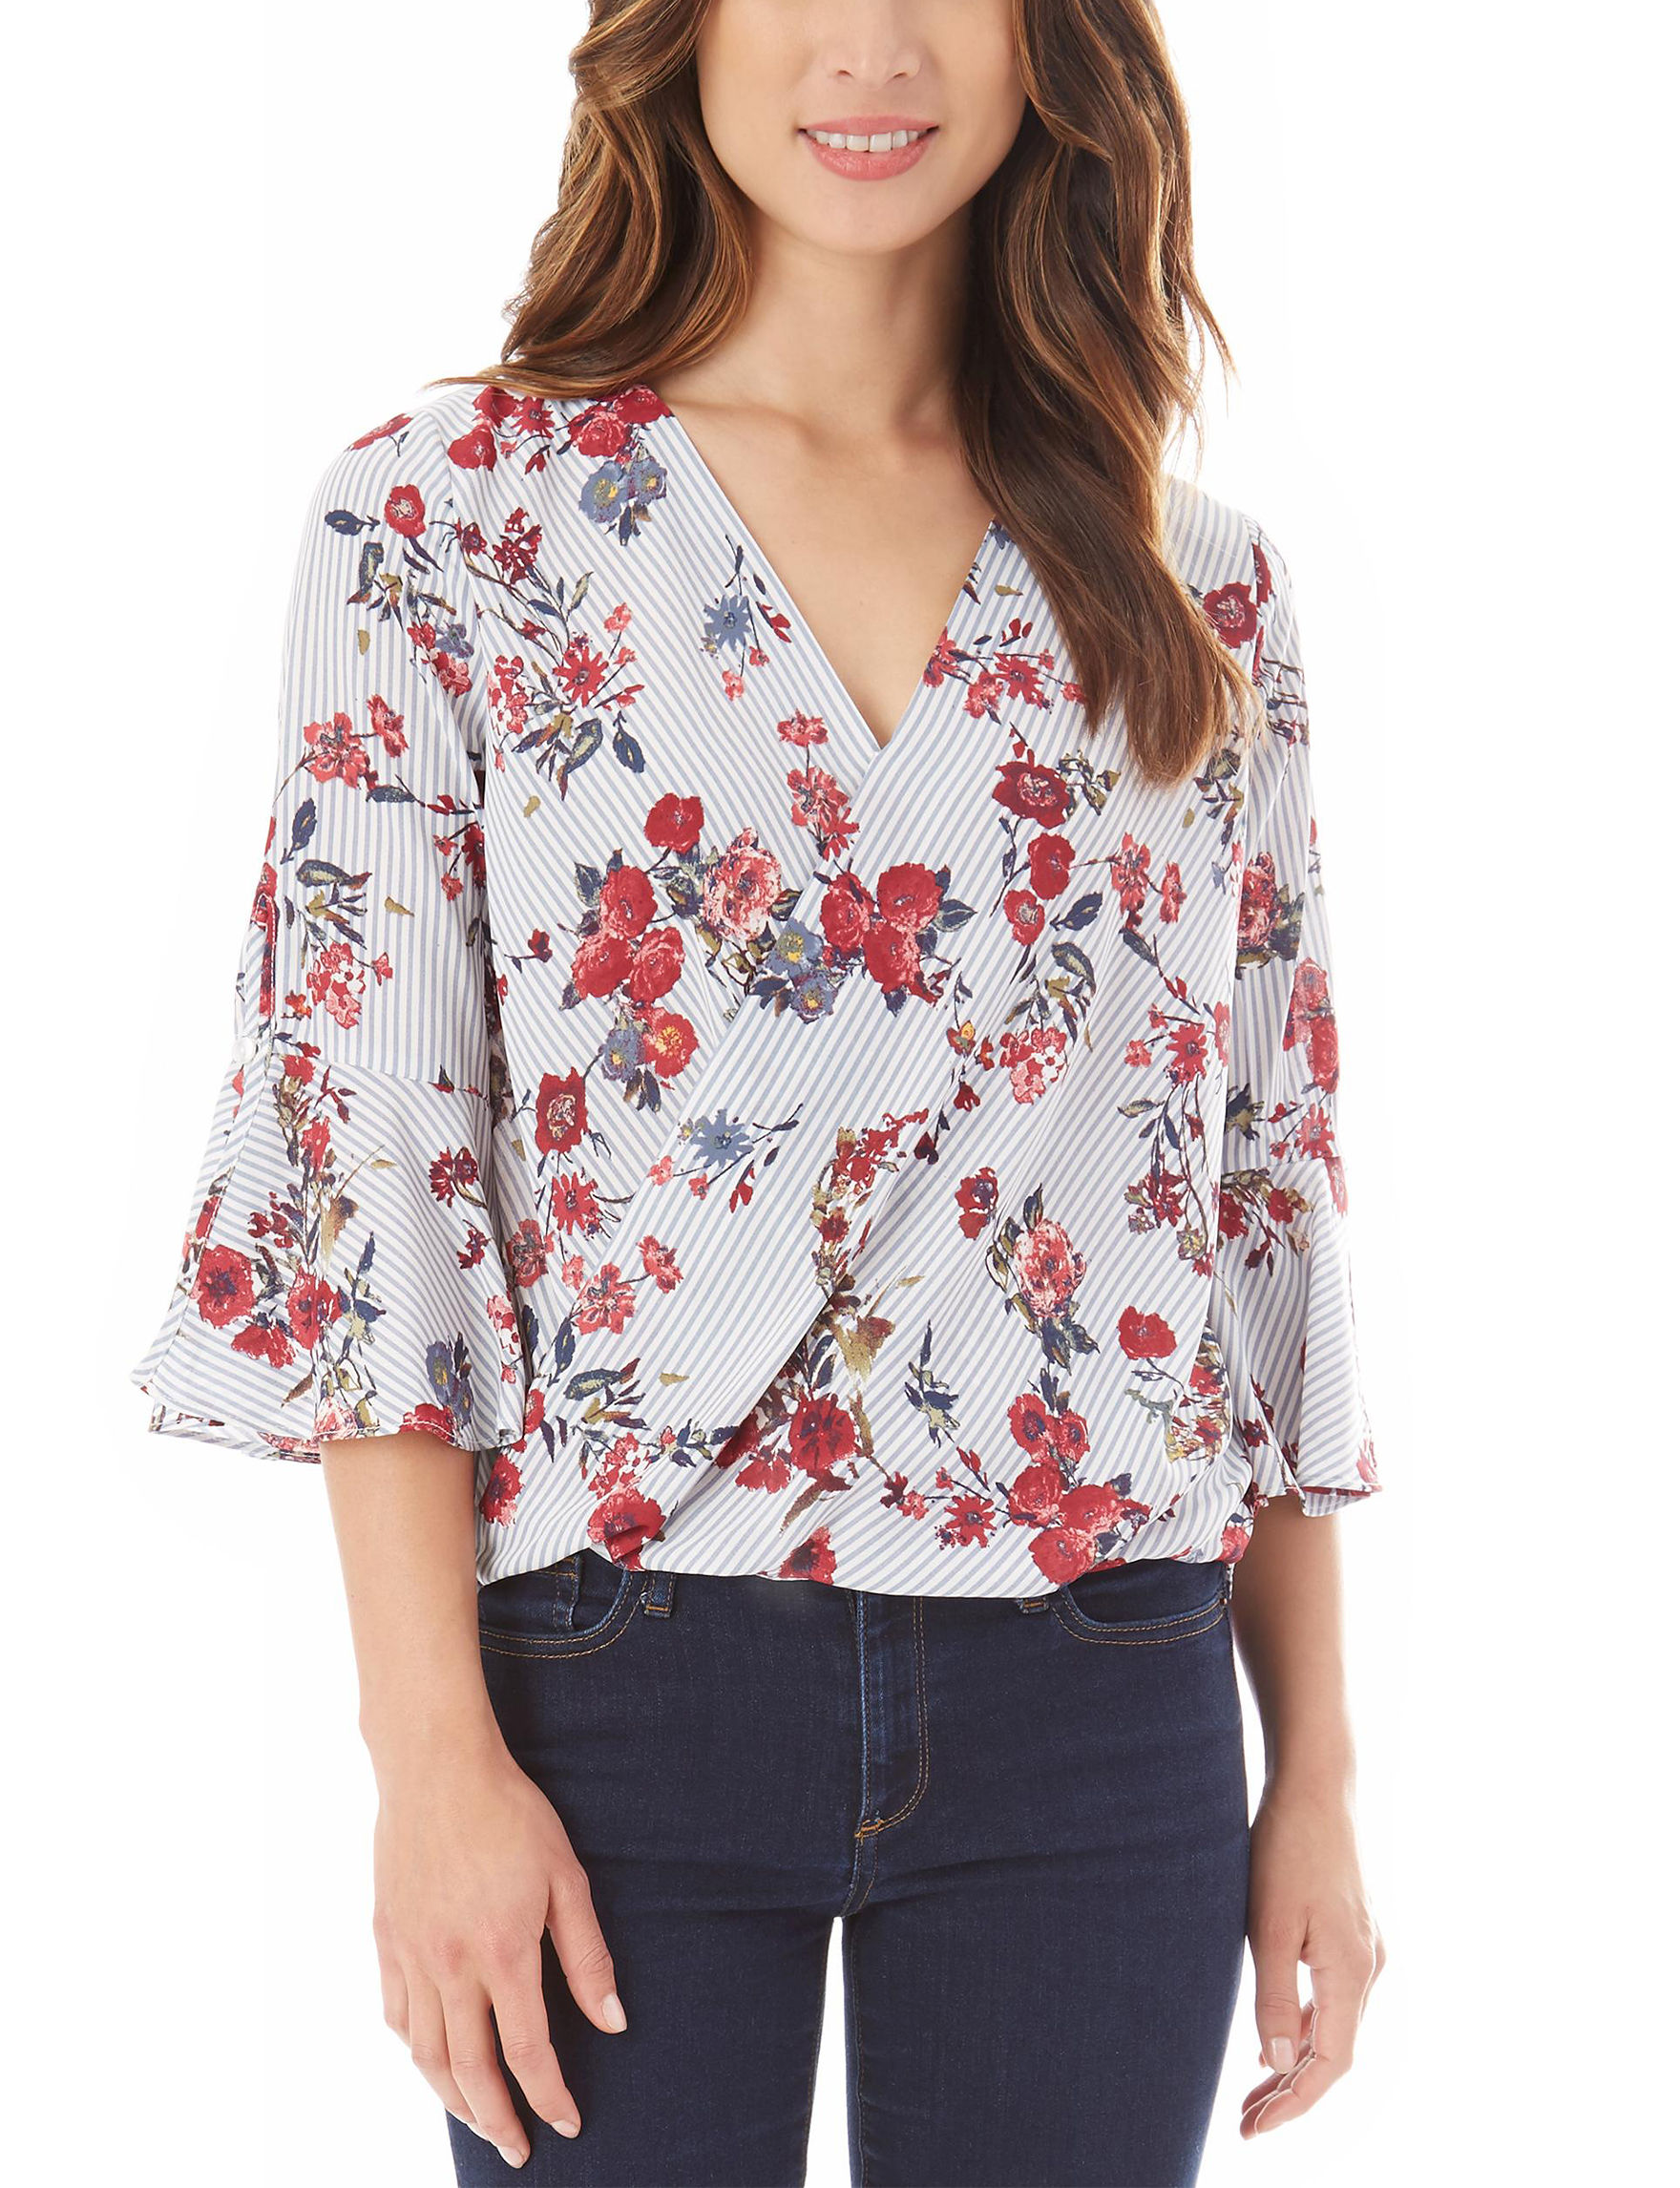 A. Byer White Floral Shirts & Blouses